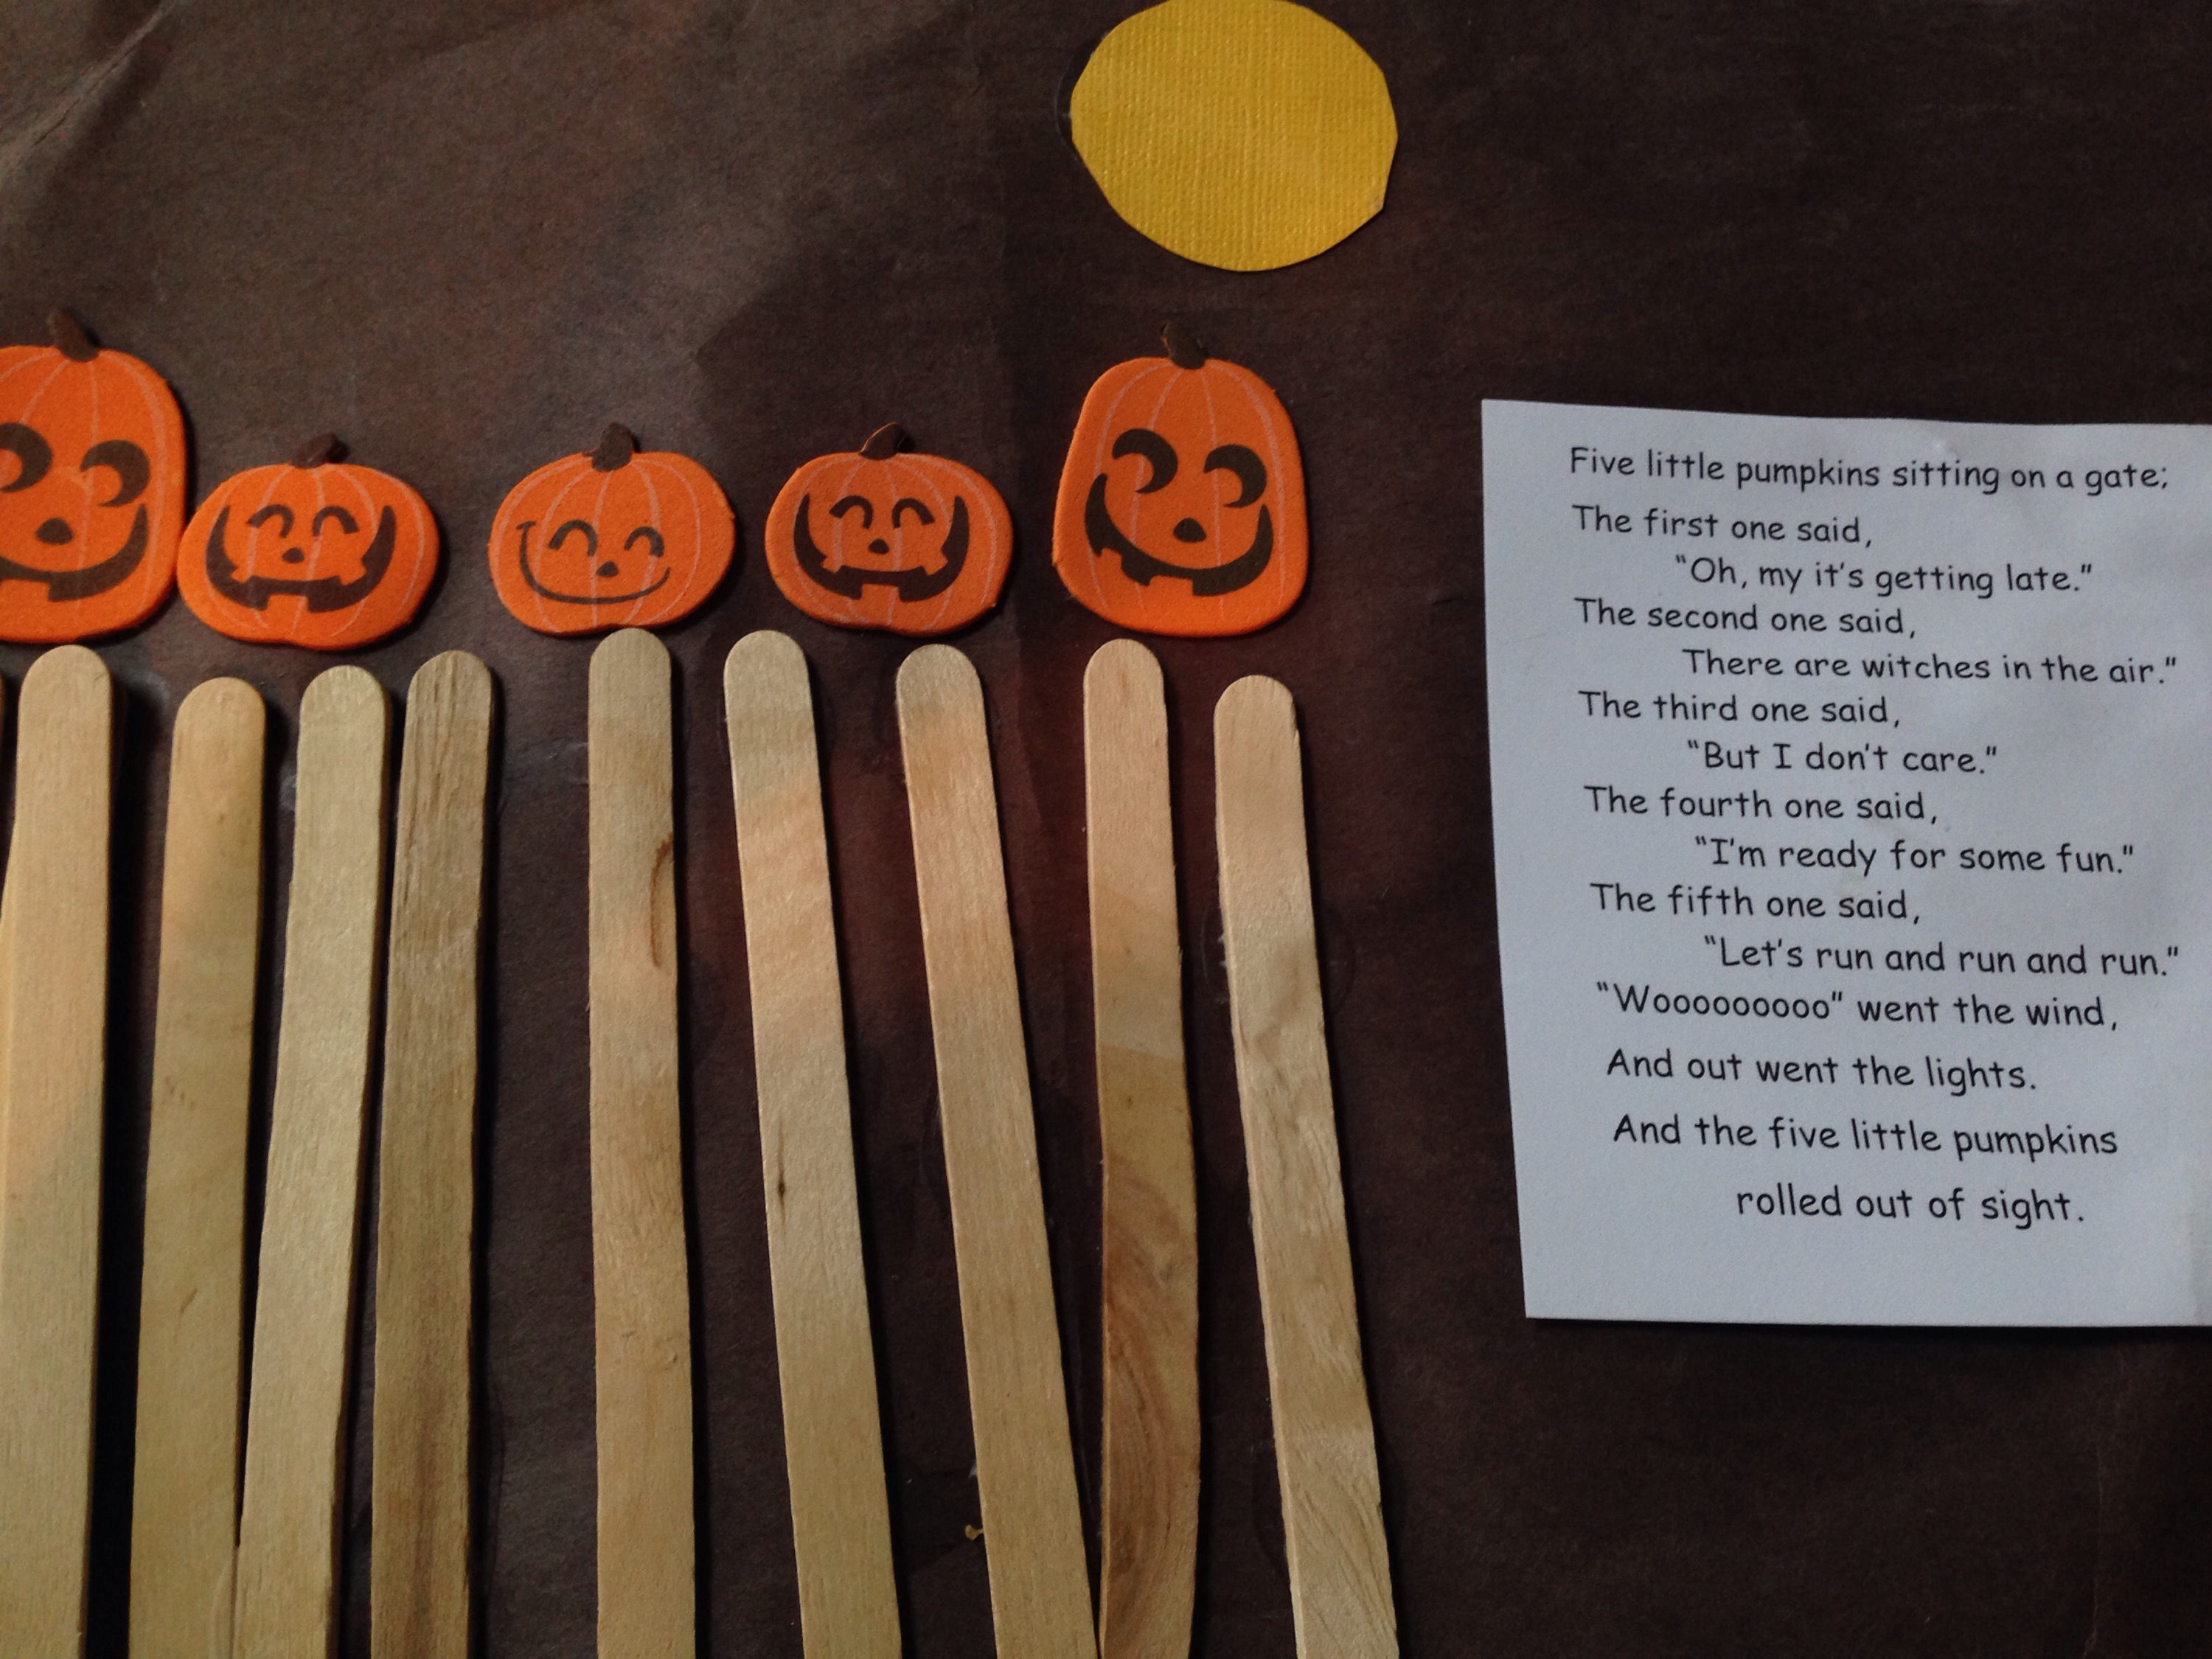 image relating to Five Little Pumpkins Poem Printable identified as 5 Small Pumpkins Poem and Crafts - Cly Mommy